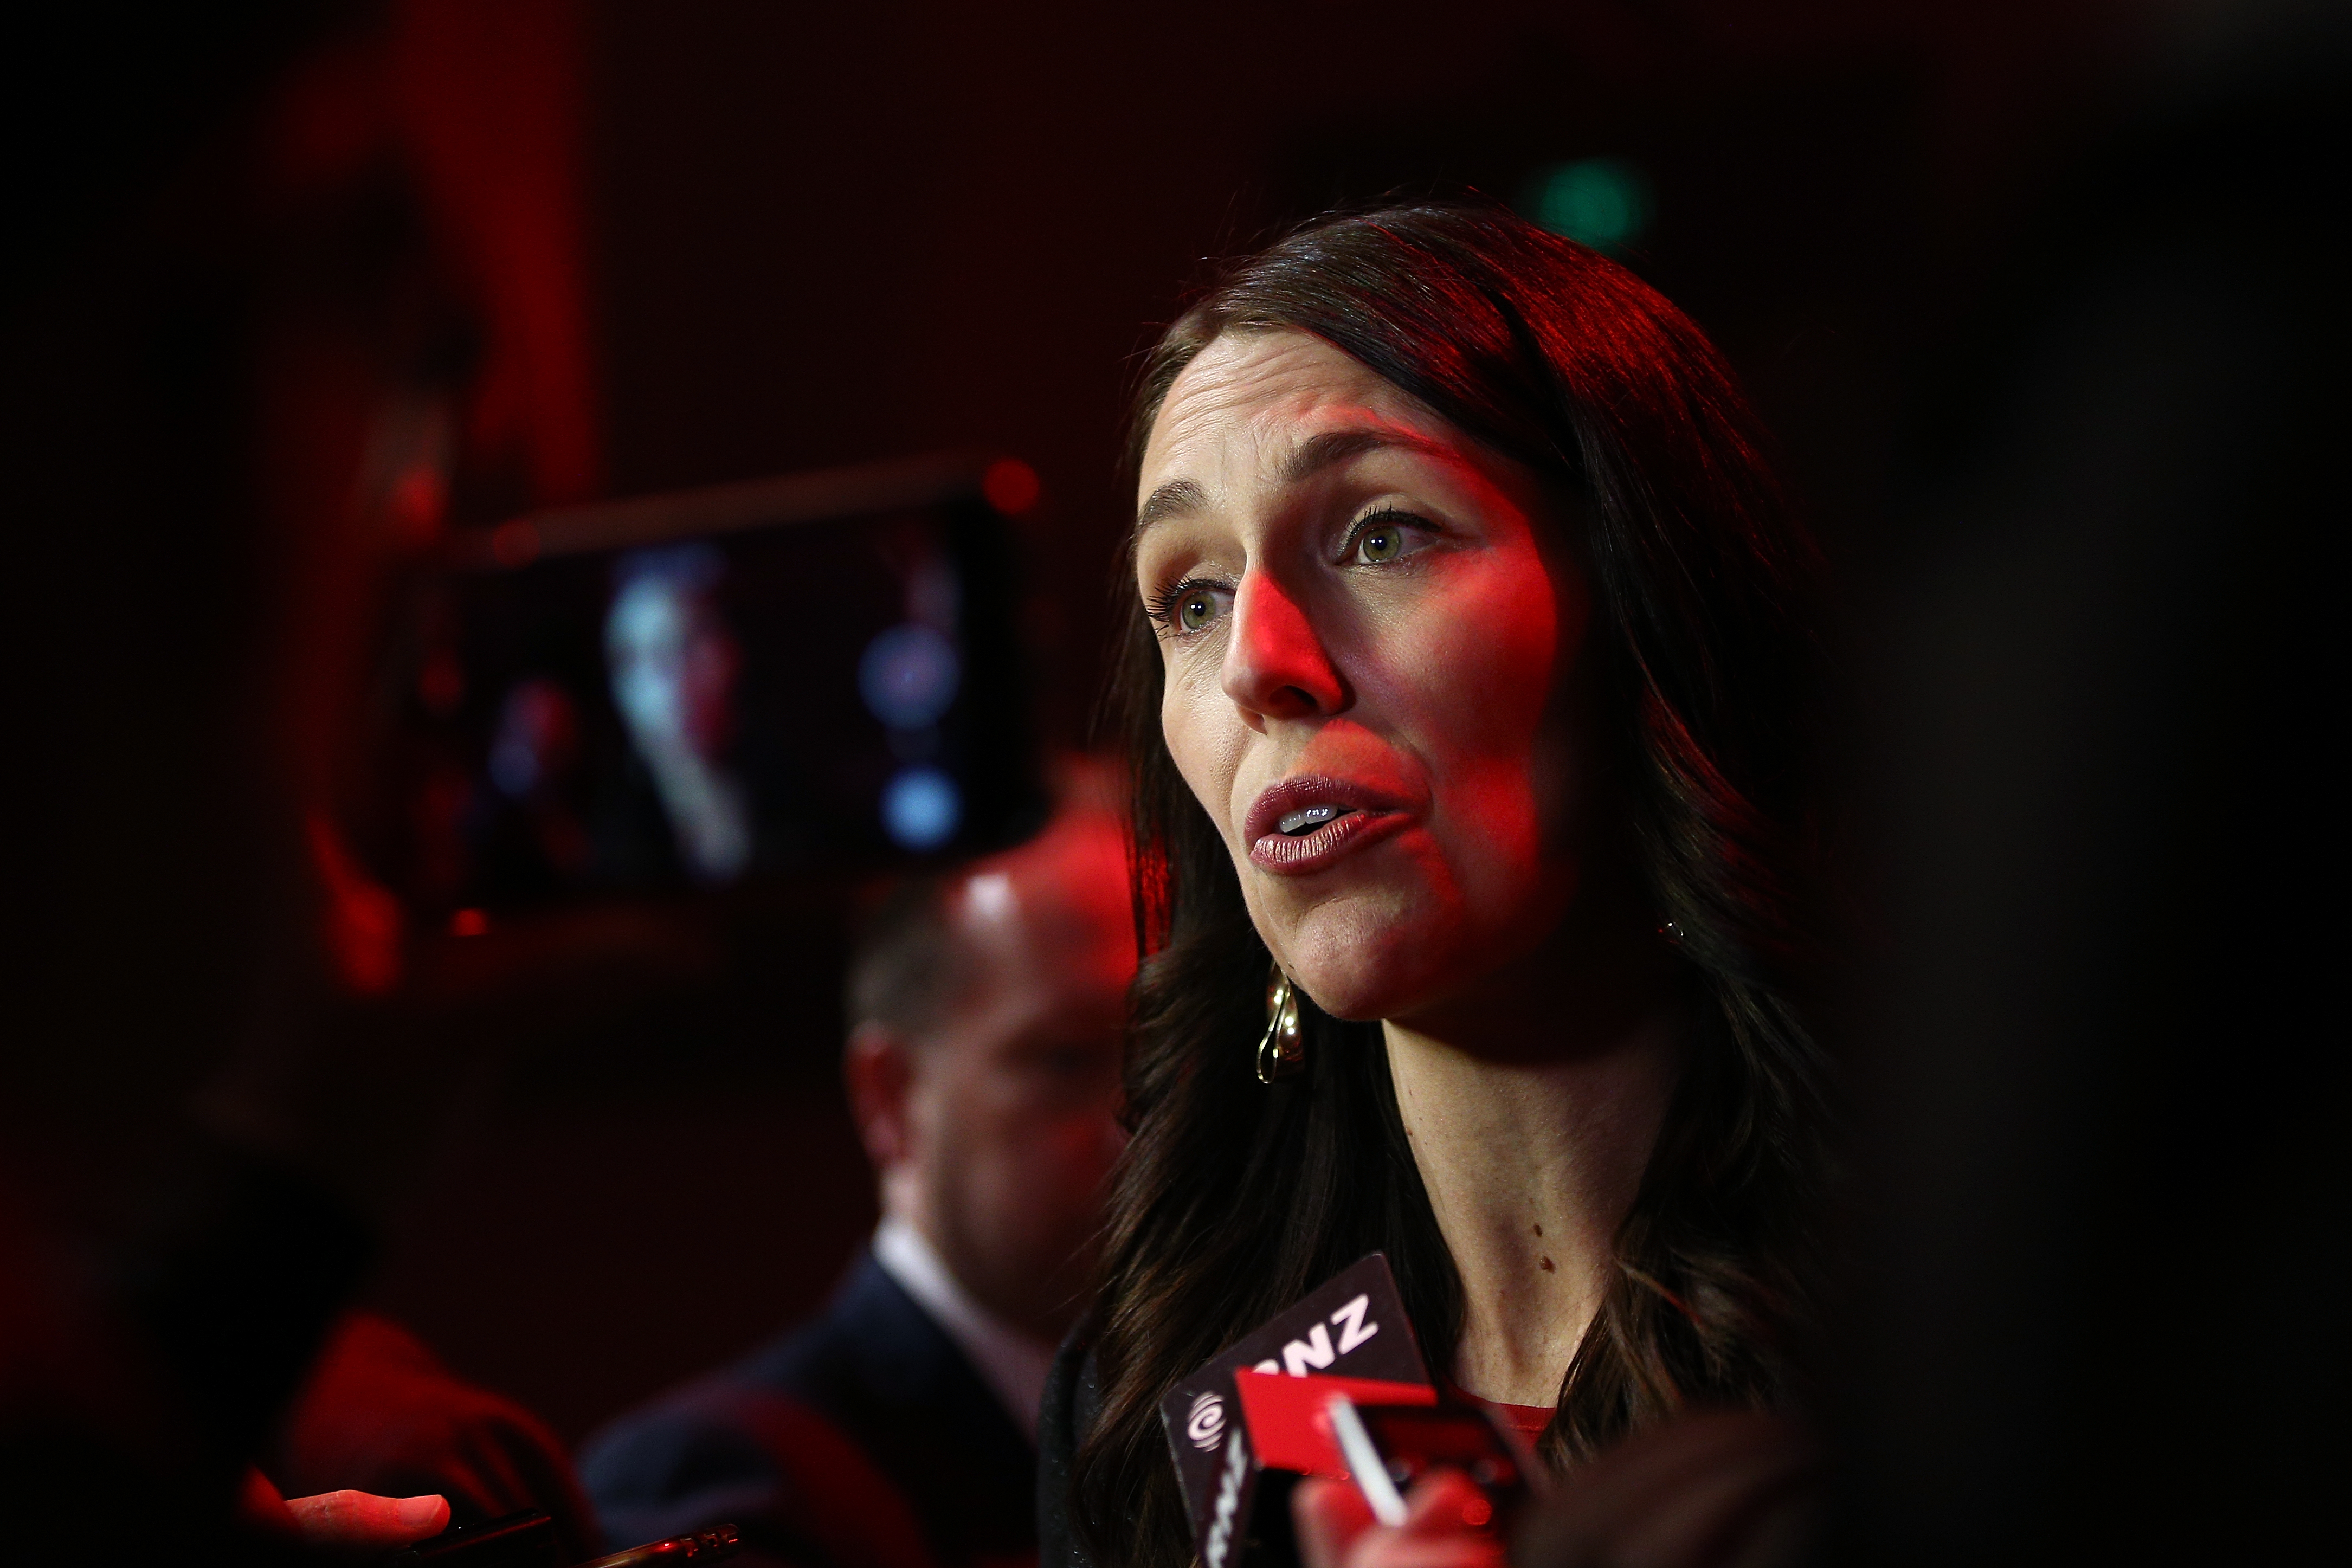 Prime Minister Jacinda Ardern speaks with media after the Labour Party Conference on November 4, 2018 in Dunedin, New Zealand.